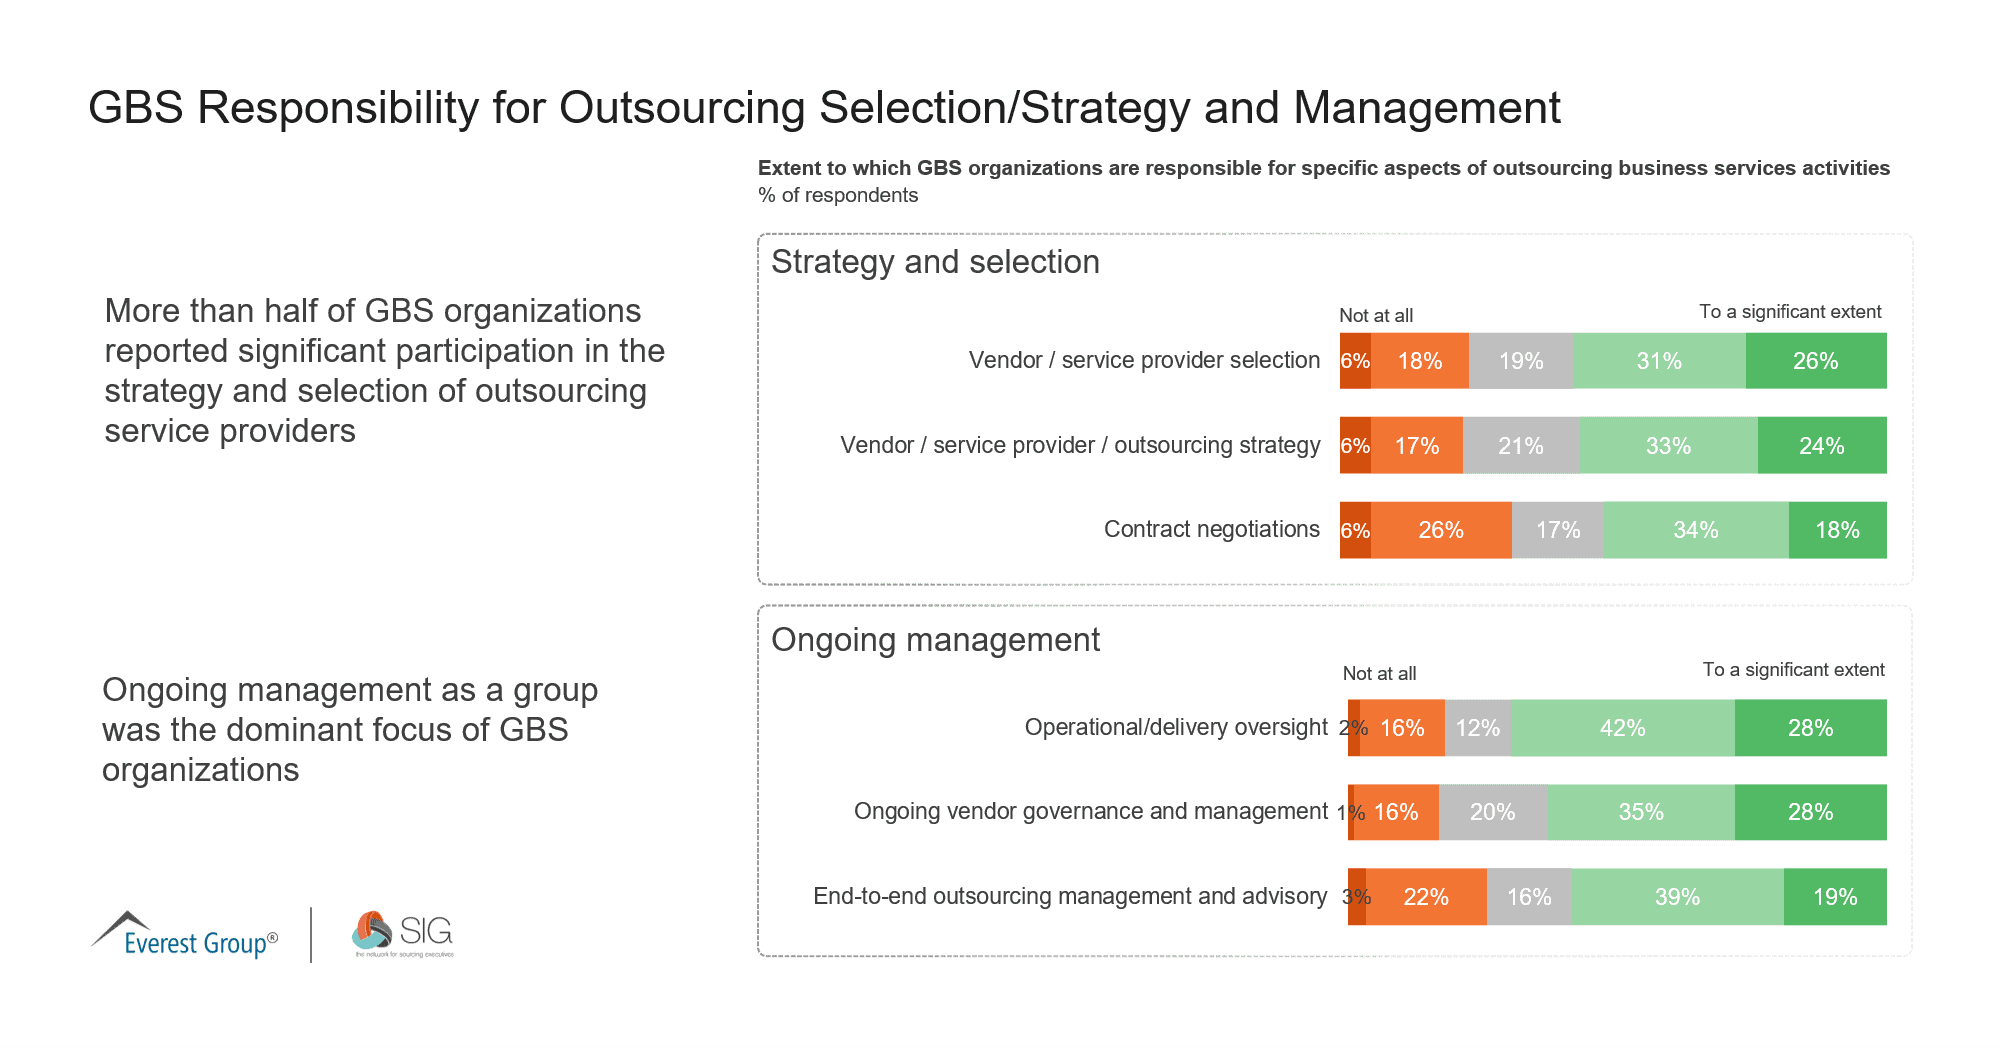 May 2021 Quick Poll | GBS Responsibility for Outsourcing Selection-Strategy and Management